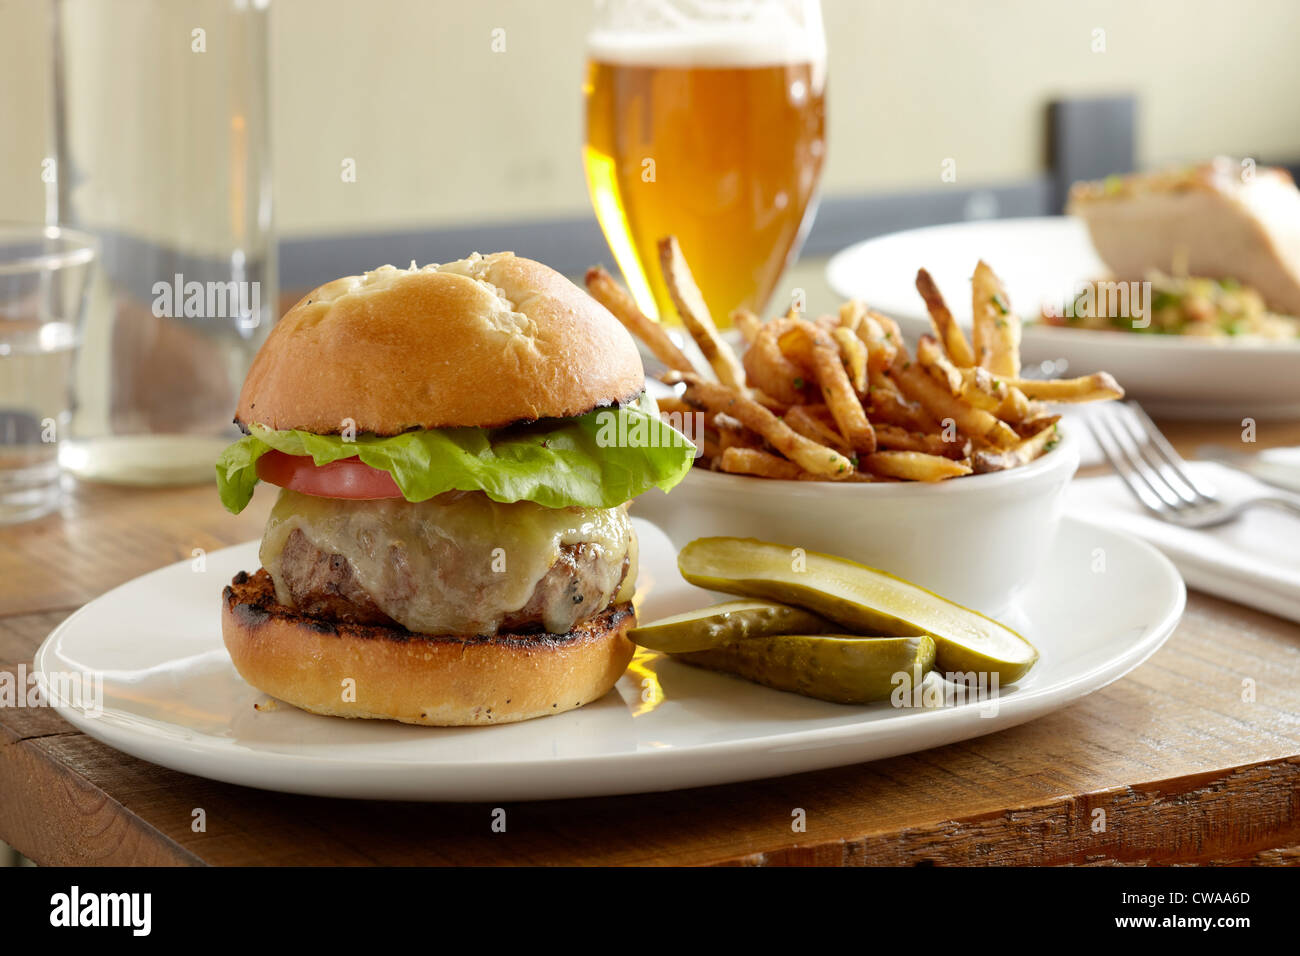 Burger et frites Photo Stock